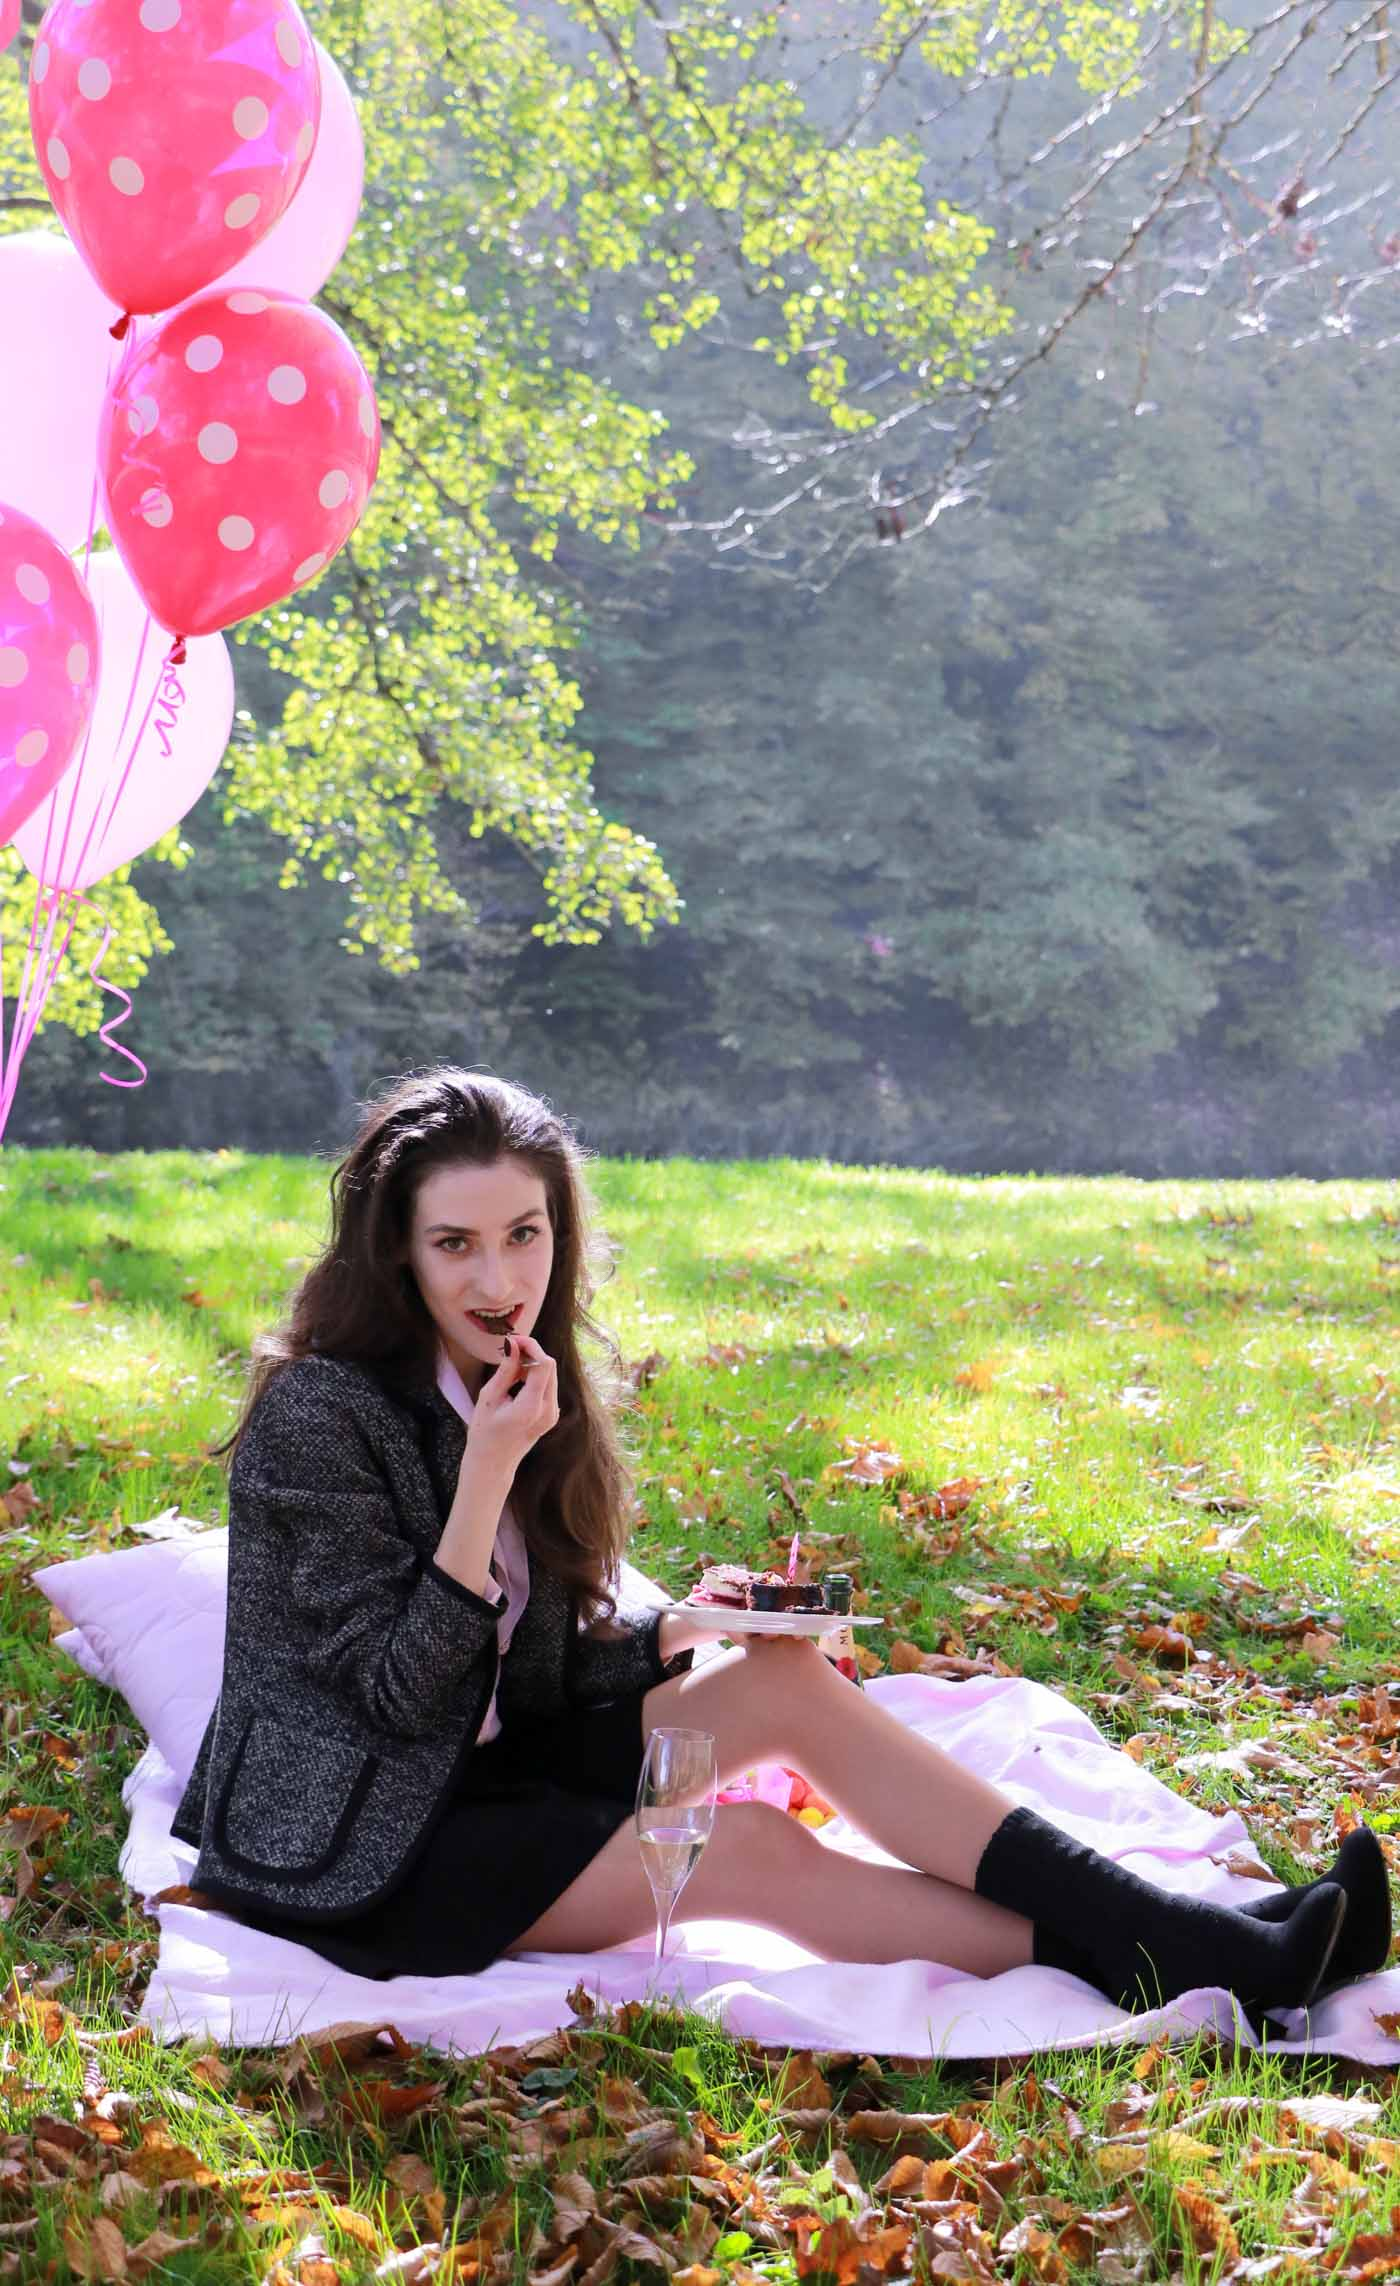 Fashion Blogger Veronika Lipar of Brunette from Wall Street wearing chic mini ruffled skirt, tweed jacket, romantic ruffled pink blouse and sock booties at her outdoor birthday party